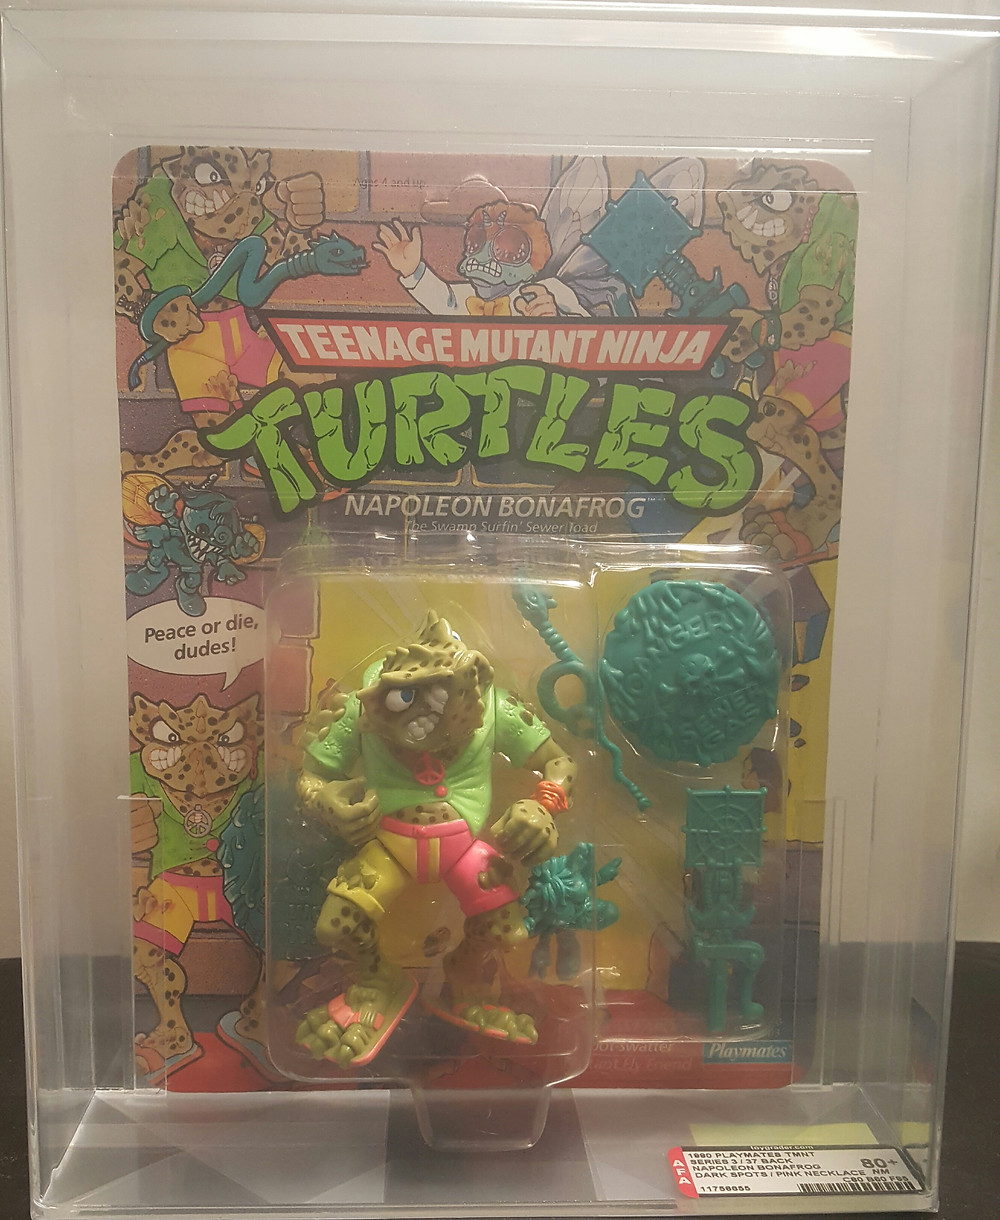 Vintage Tenenage Mutant Turtles Http://www.valleygoto.com